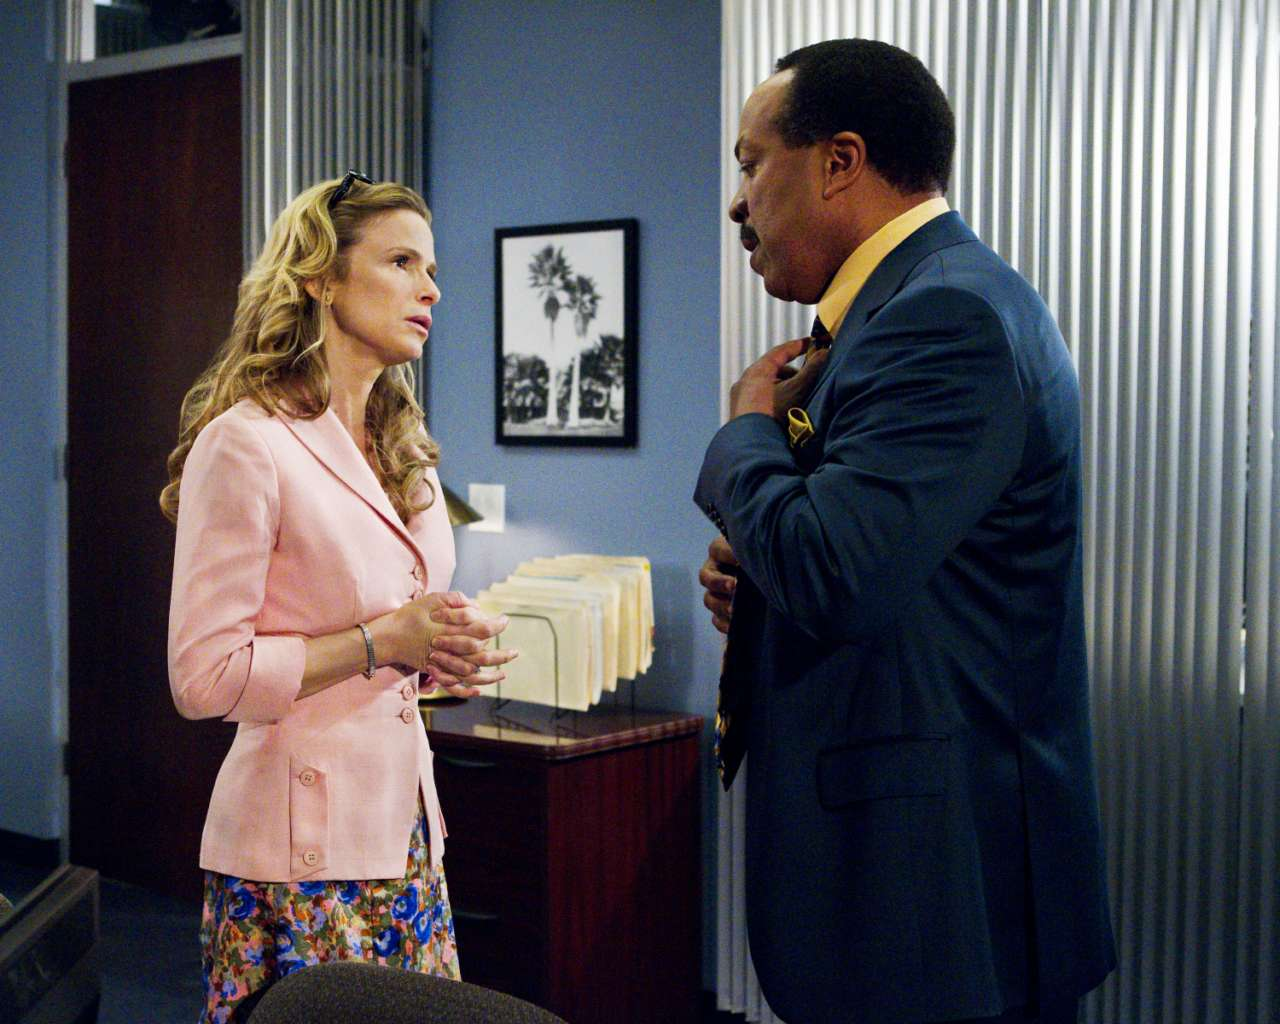 the last woman standing review